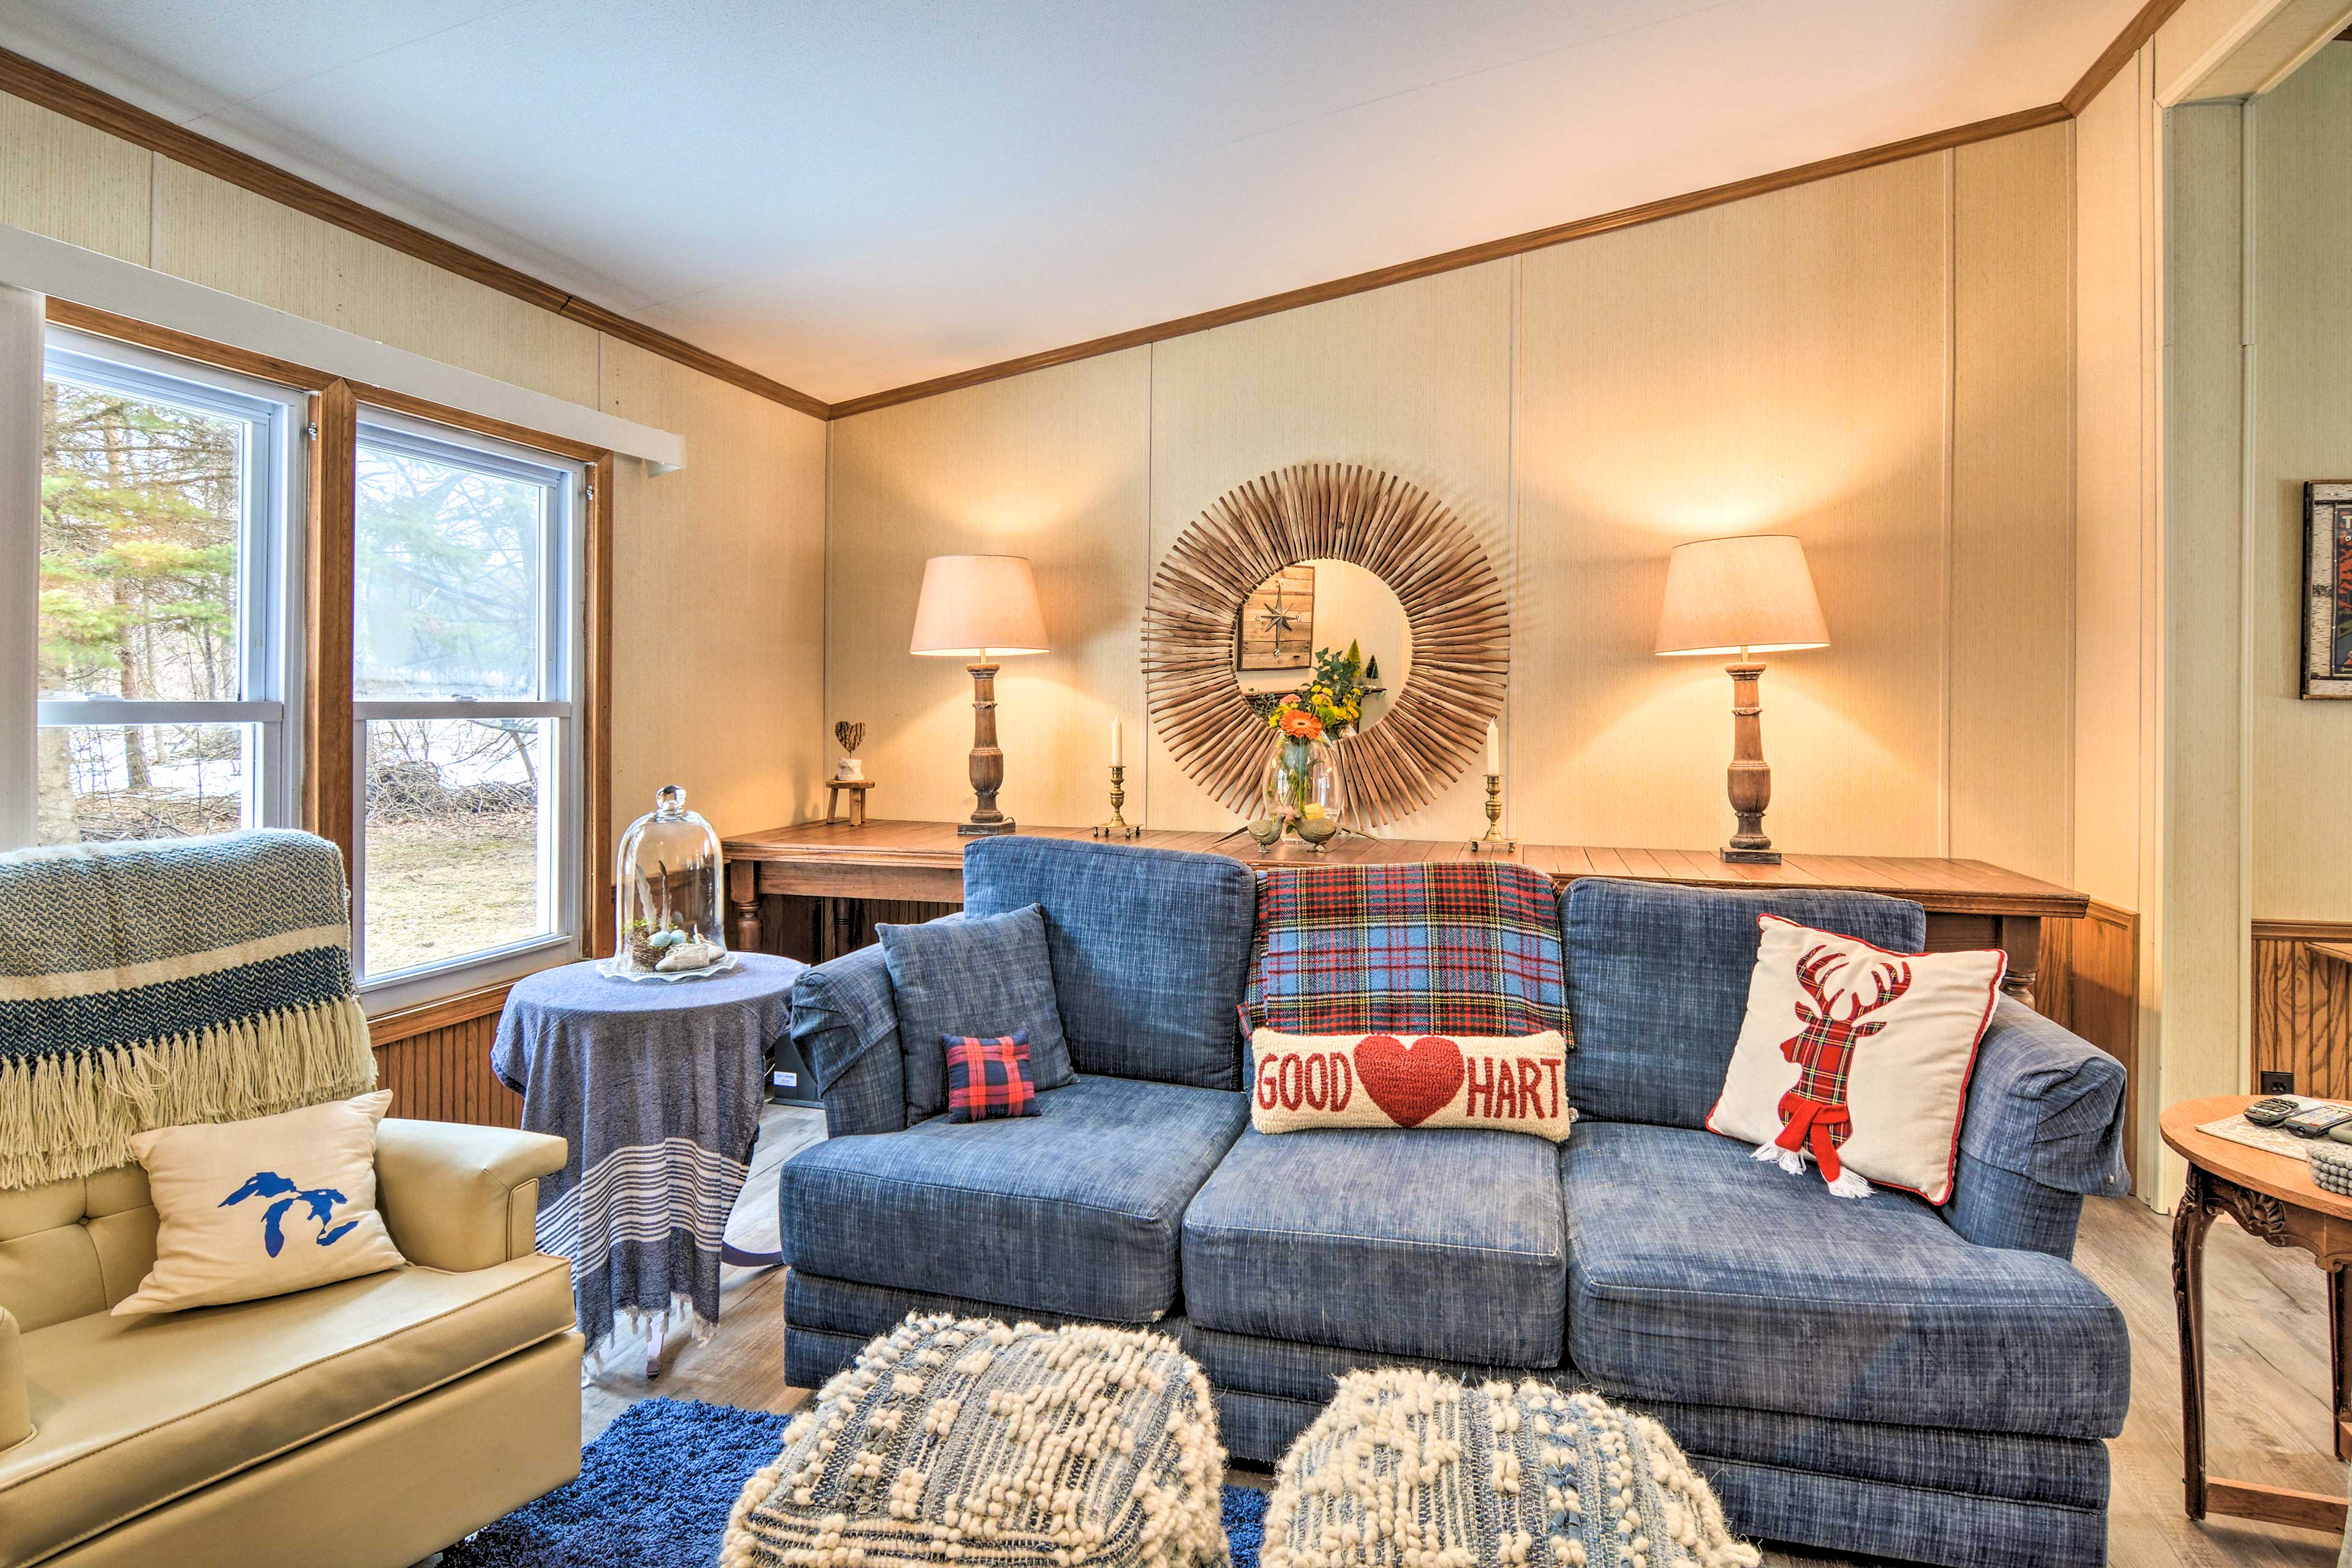 This Good Hart getaway will make you feel right at home!